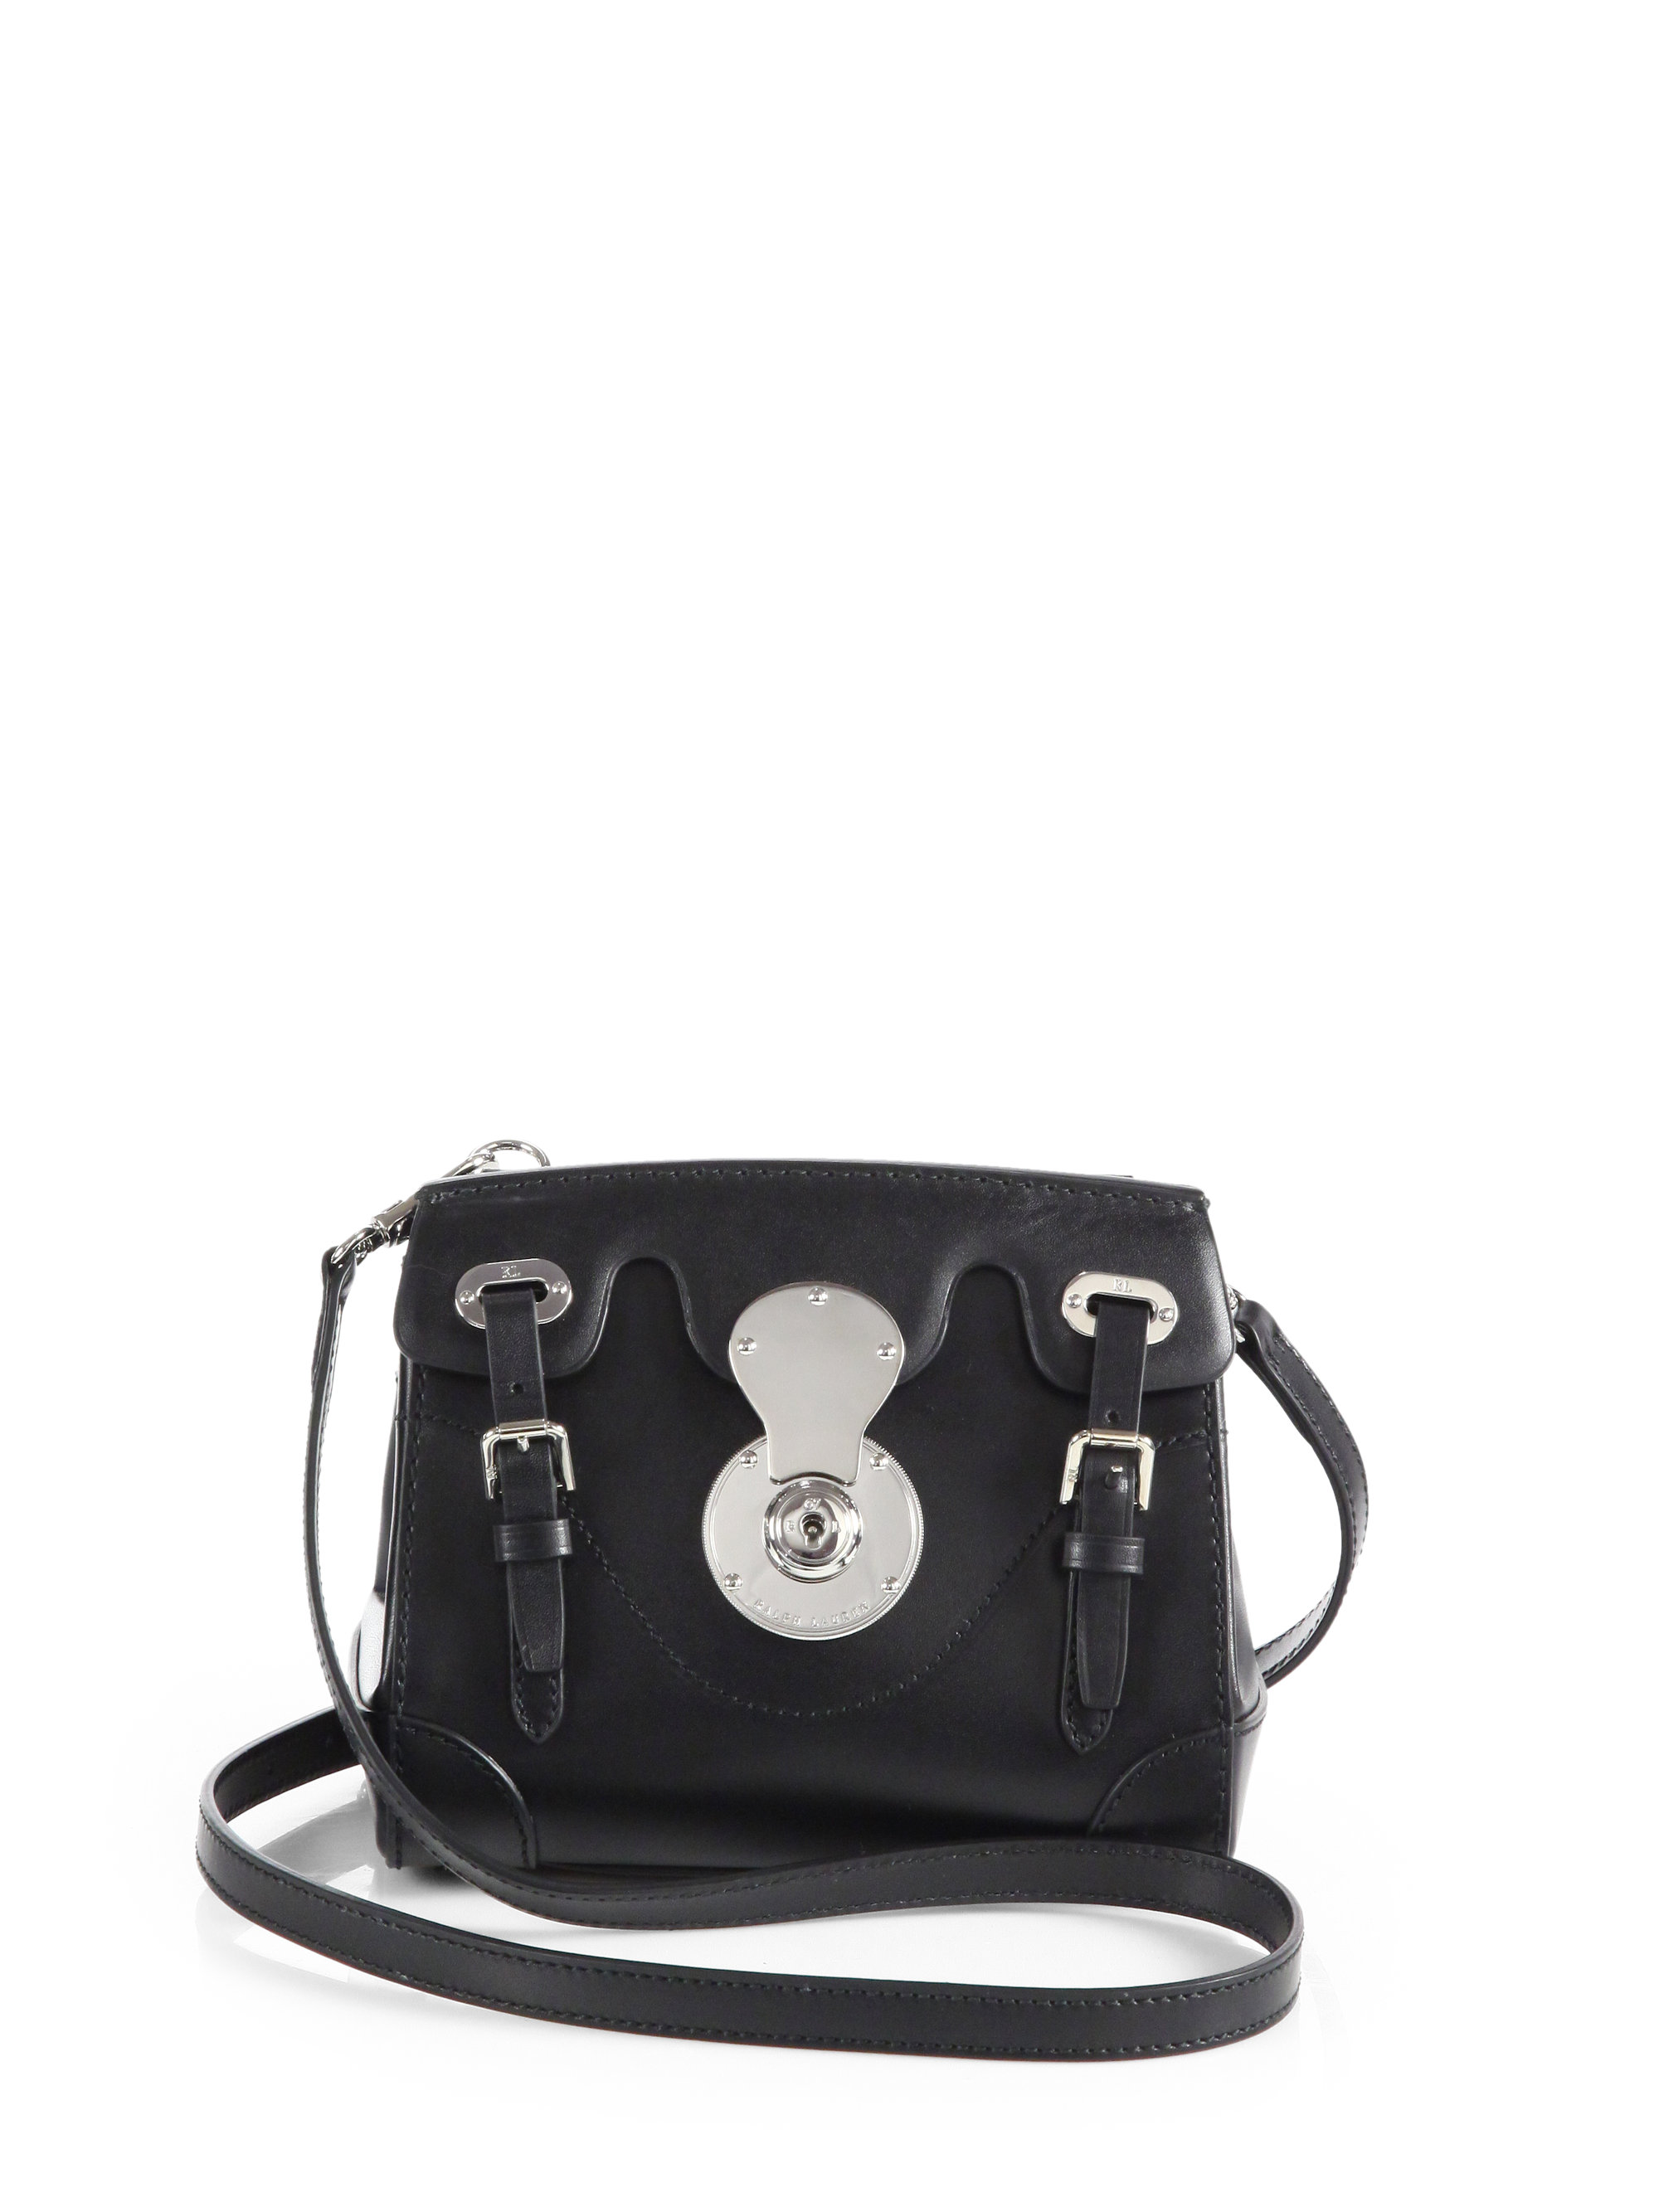 Lyst - Ralph Lauren Collection Soft Ricky Crossbody Bag in Black e5803cde1800e